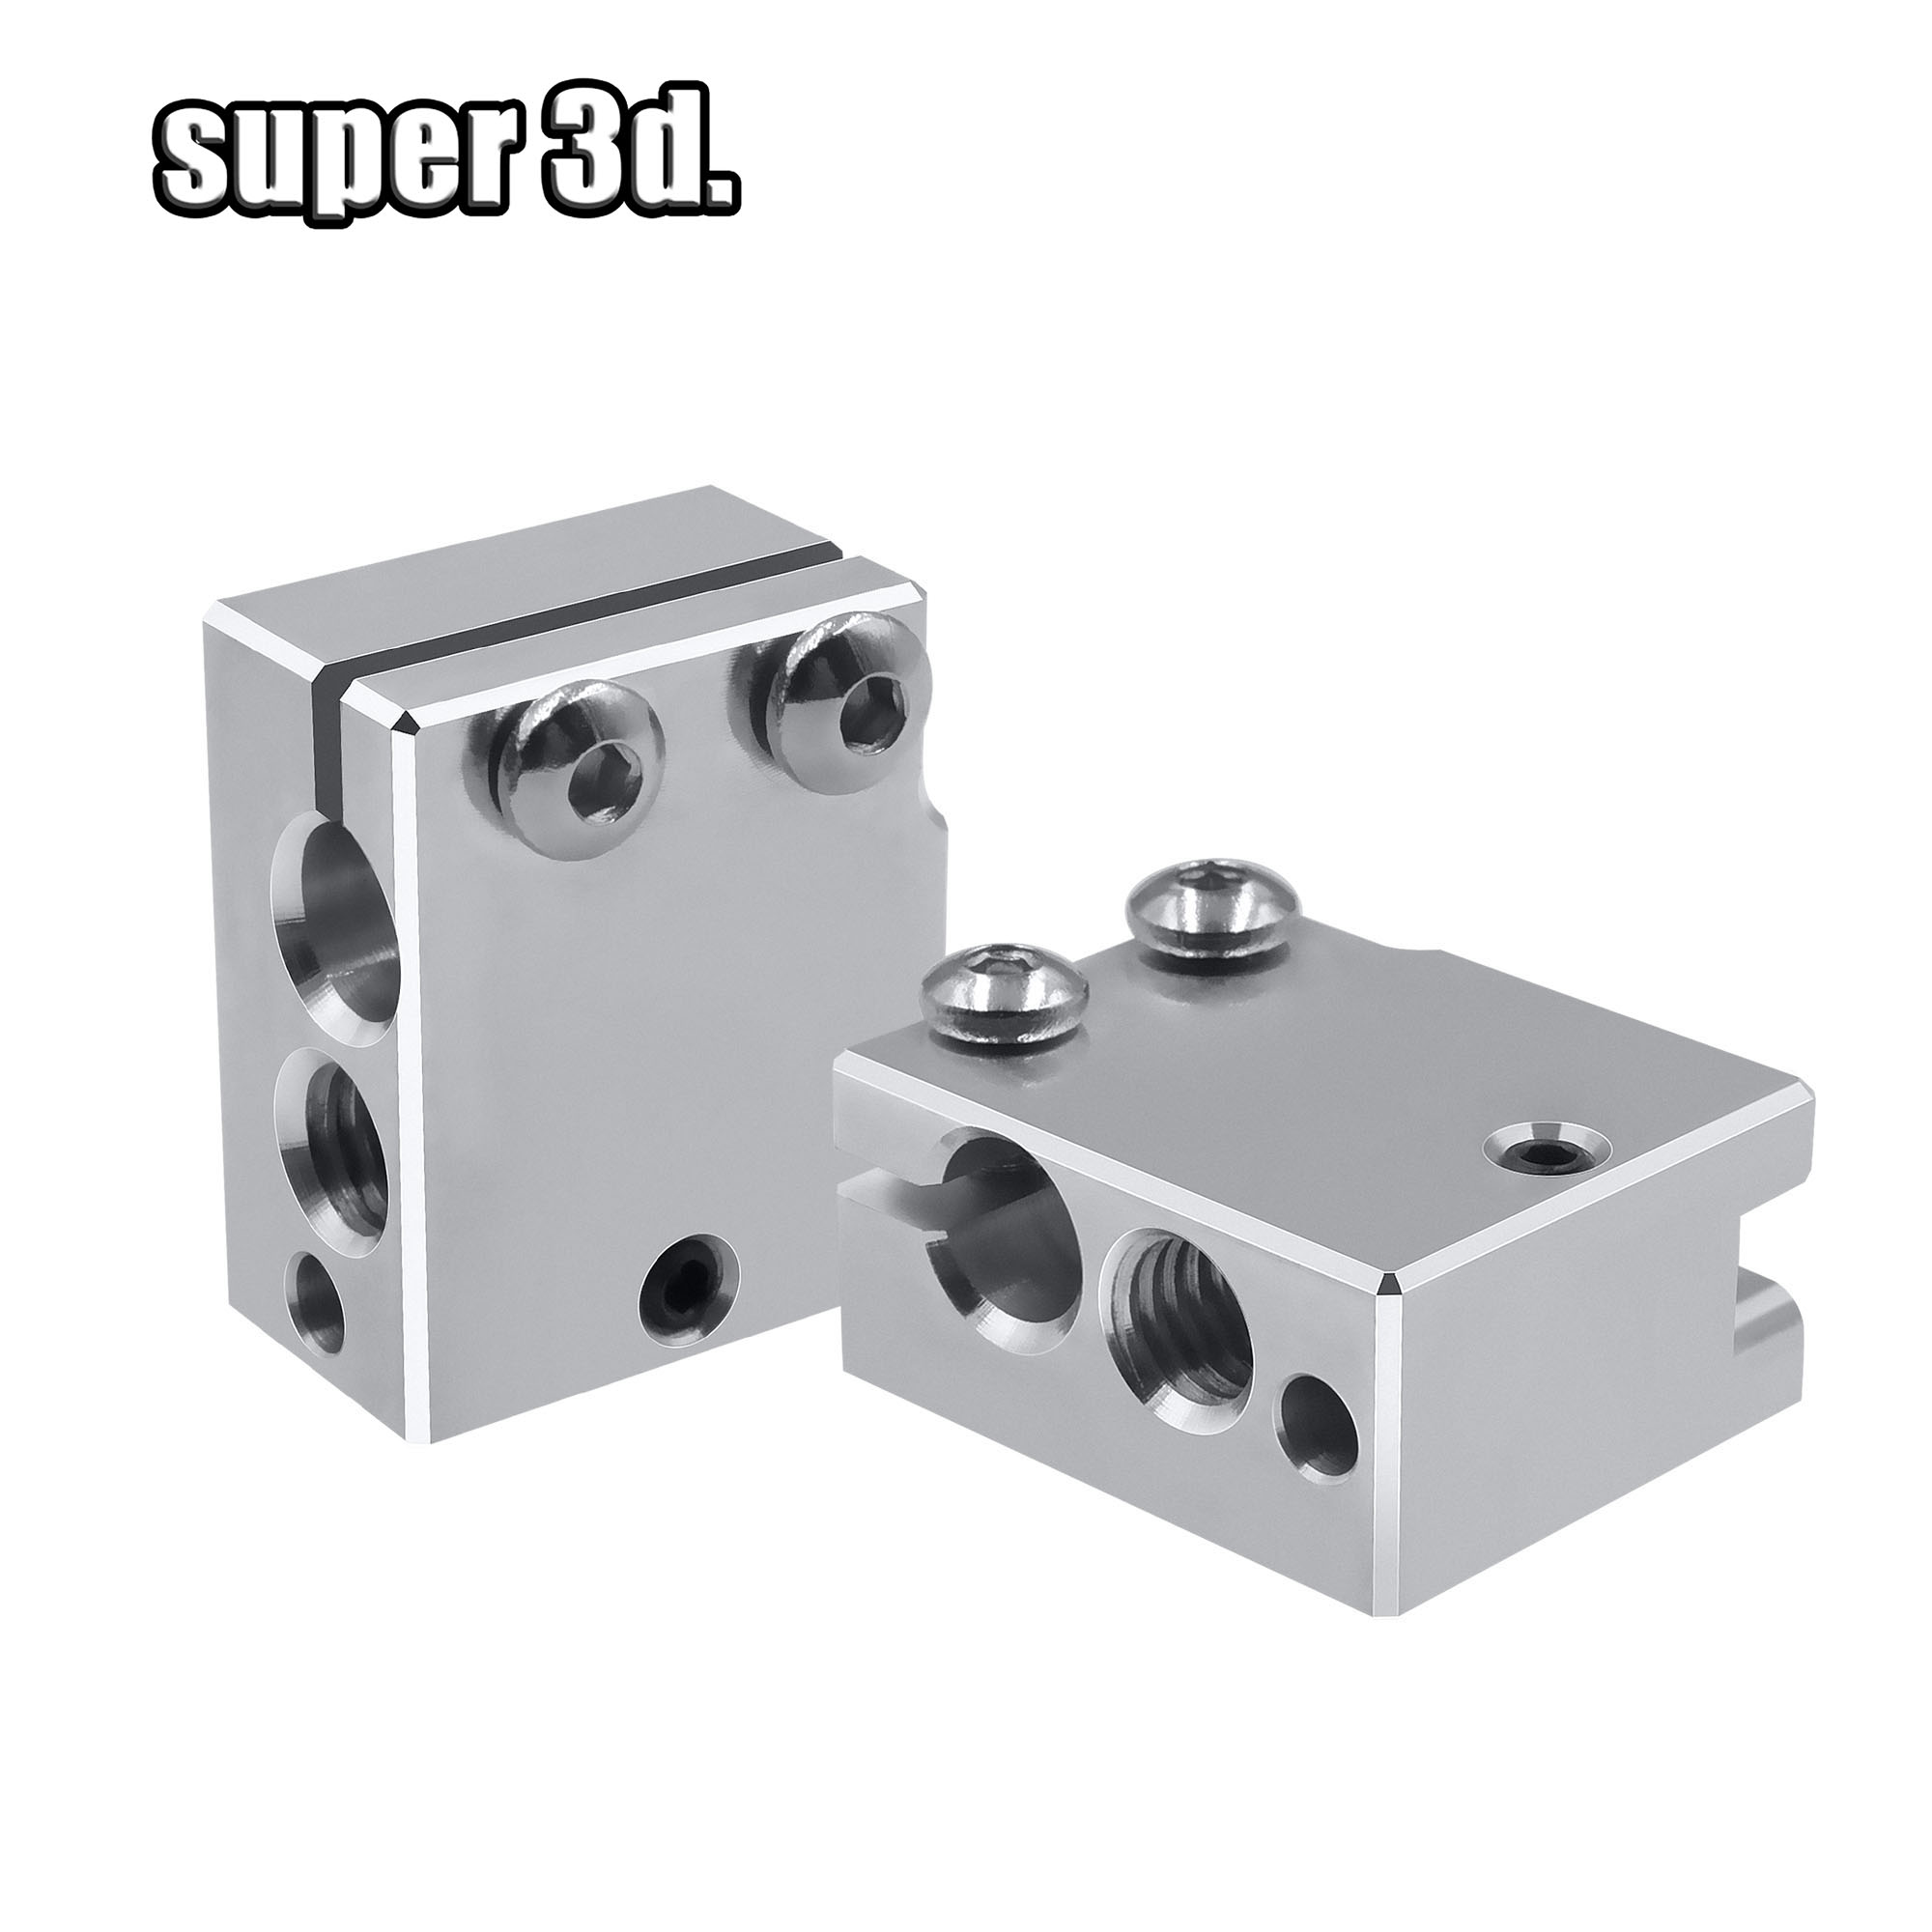 2/1pcs Upgrade PT100 Aluminum Volcano Copper Heat Block For E3d Volcano Hotend 3D Printer Heated Block For BMG Extruder TItan